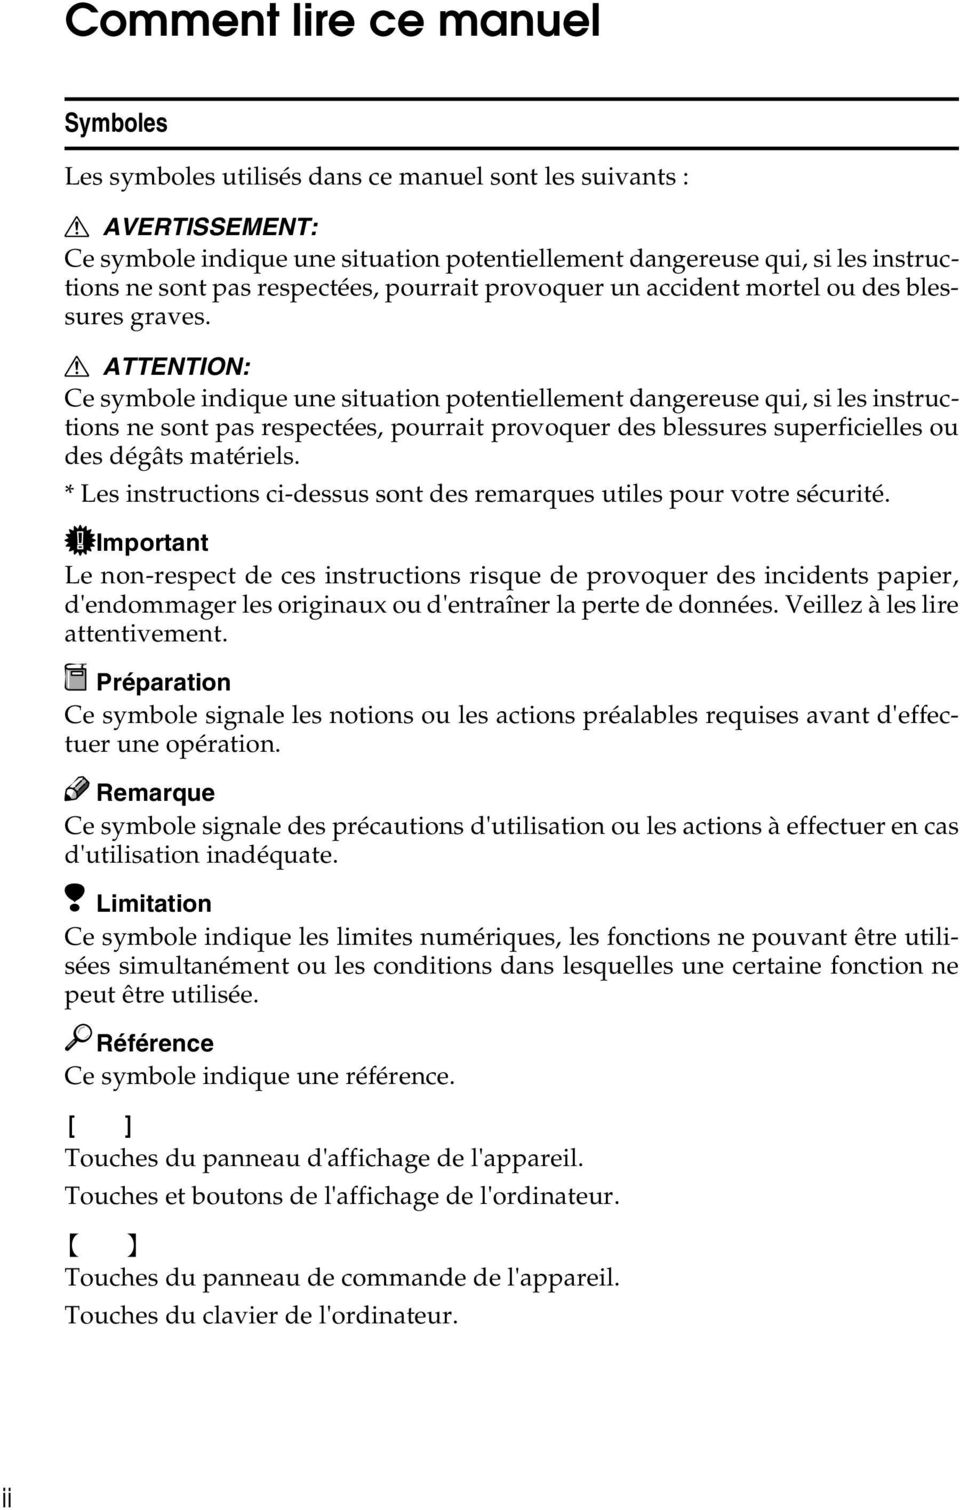 R ATTENTION: Ce symbole indique une situation potentiellement dangereuse qui, si les instructions ne sont pas respectées, pourrait provoquer des blessures superficielles ou des dégâts matériels.